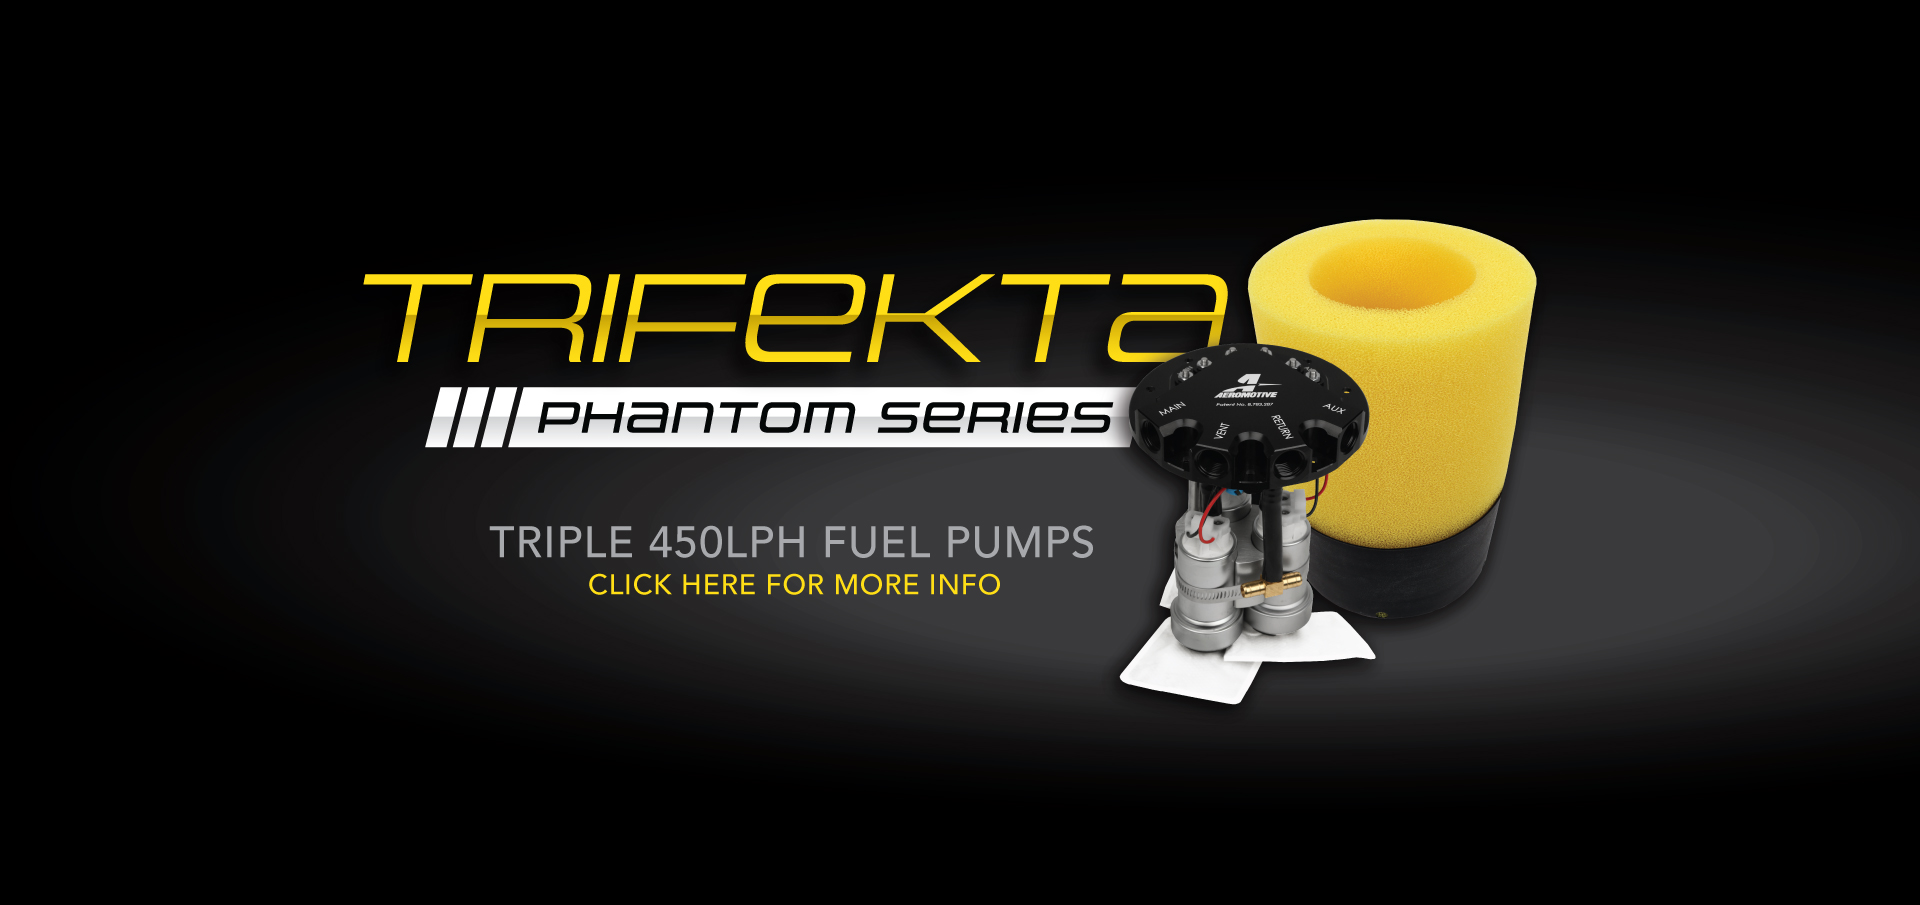 97 Mustang Fuel Filter Location Aeromotive Inc Serious Systems Trifektaphantom Product Indeximg Pumps